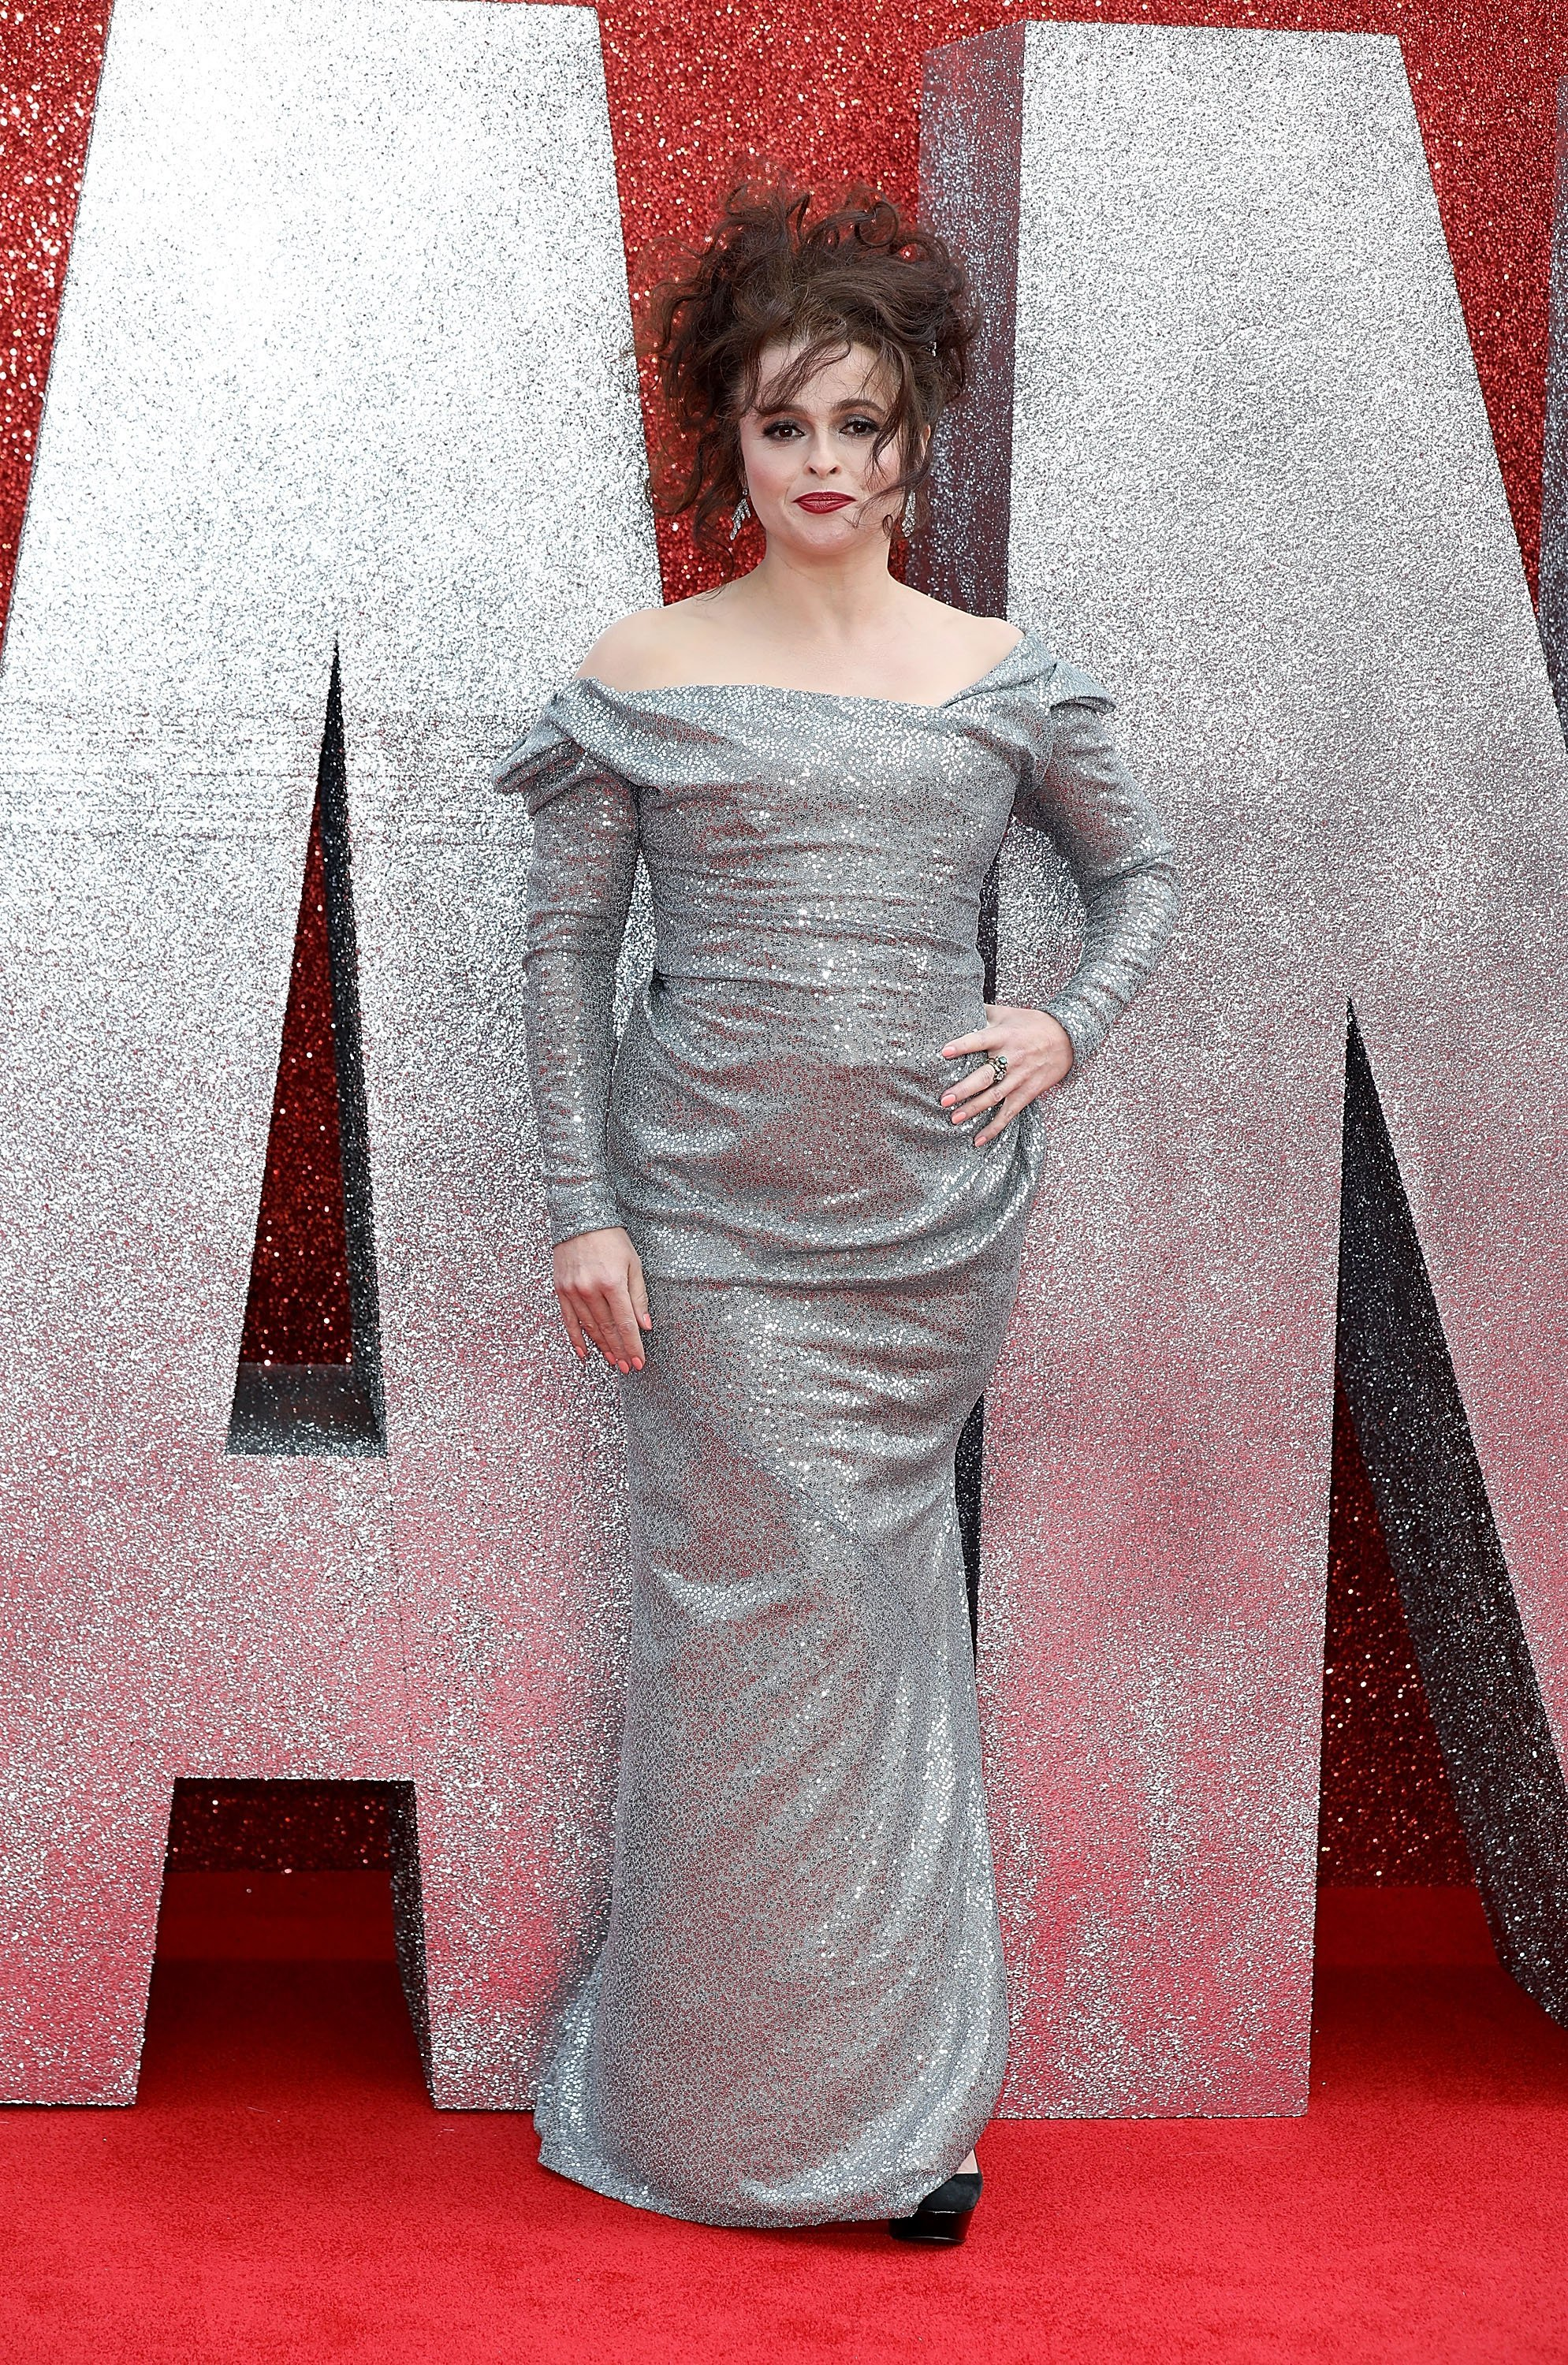 """Helena Bonham Carter attends the premiere of """"Ocean's 8"""" in London, England on June 13, 2018 